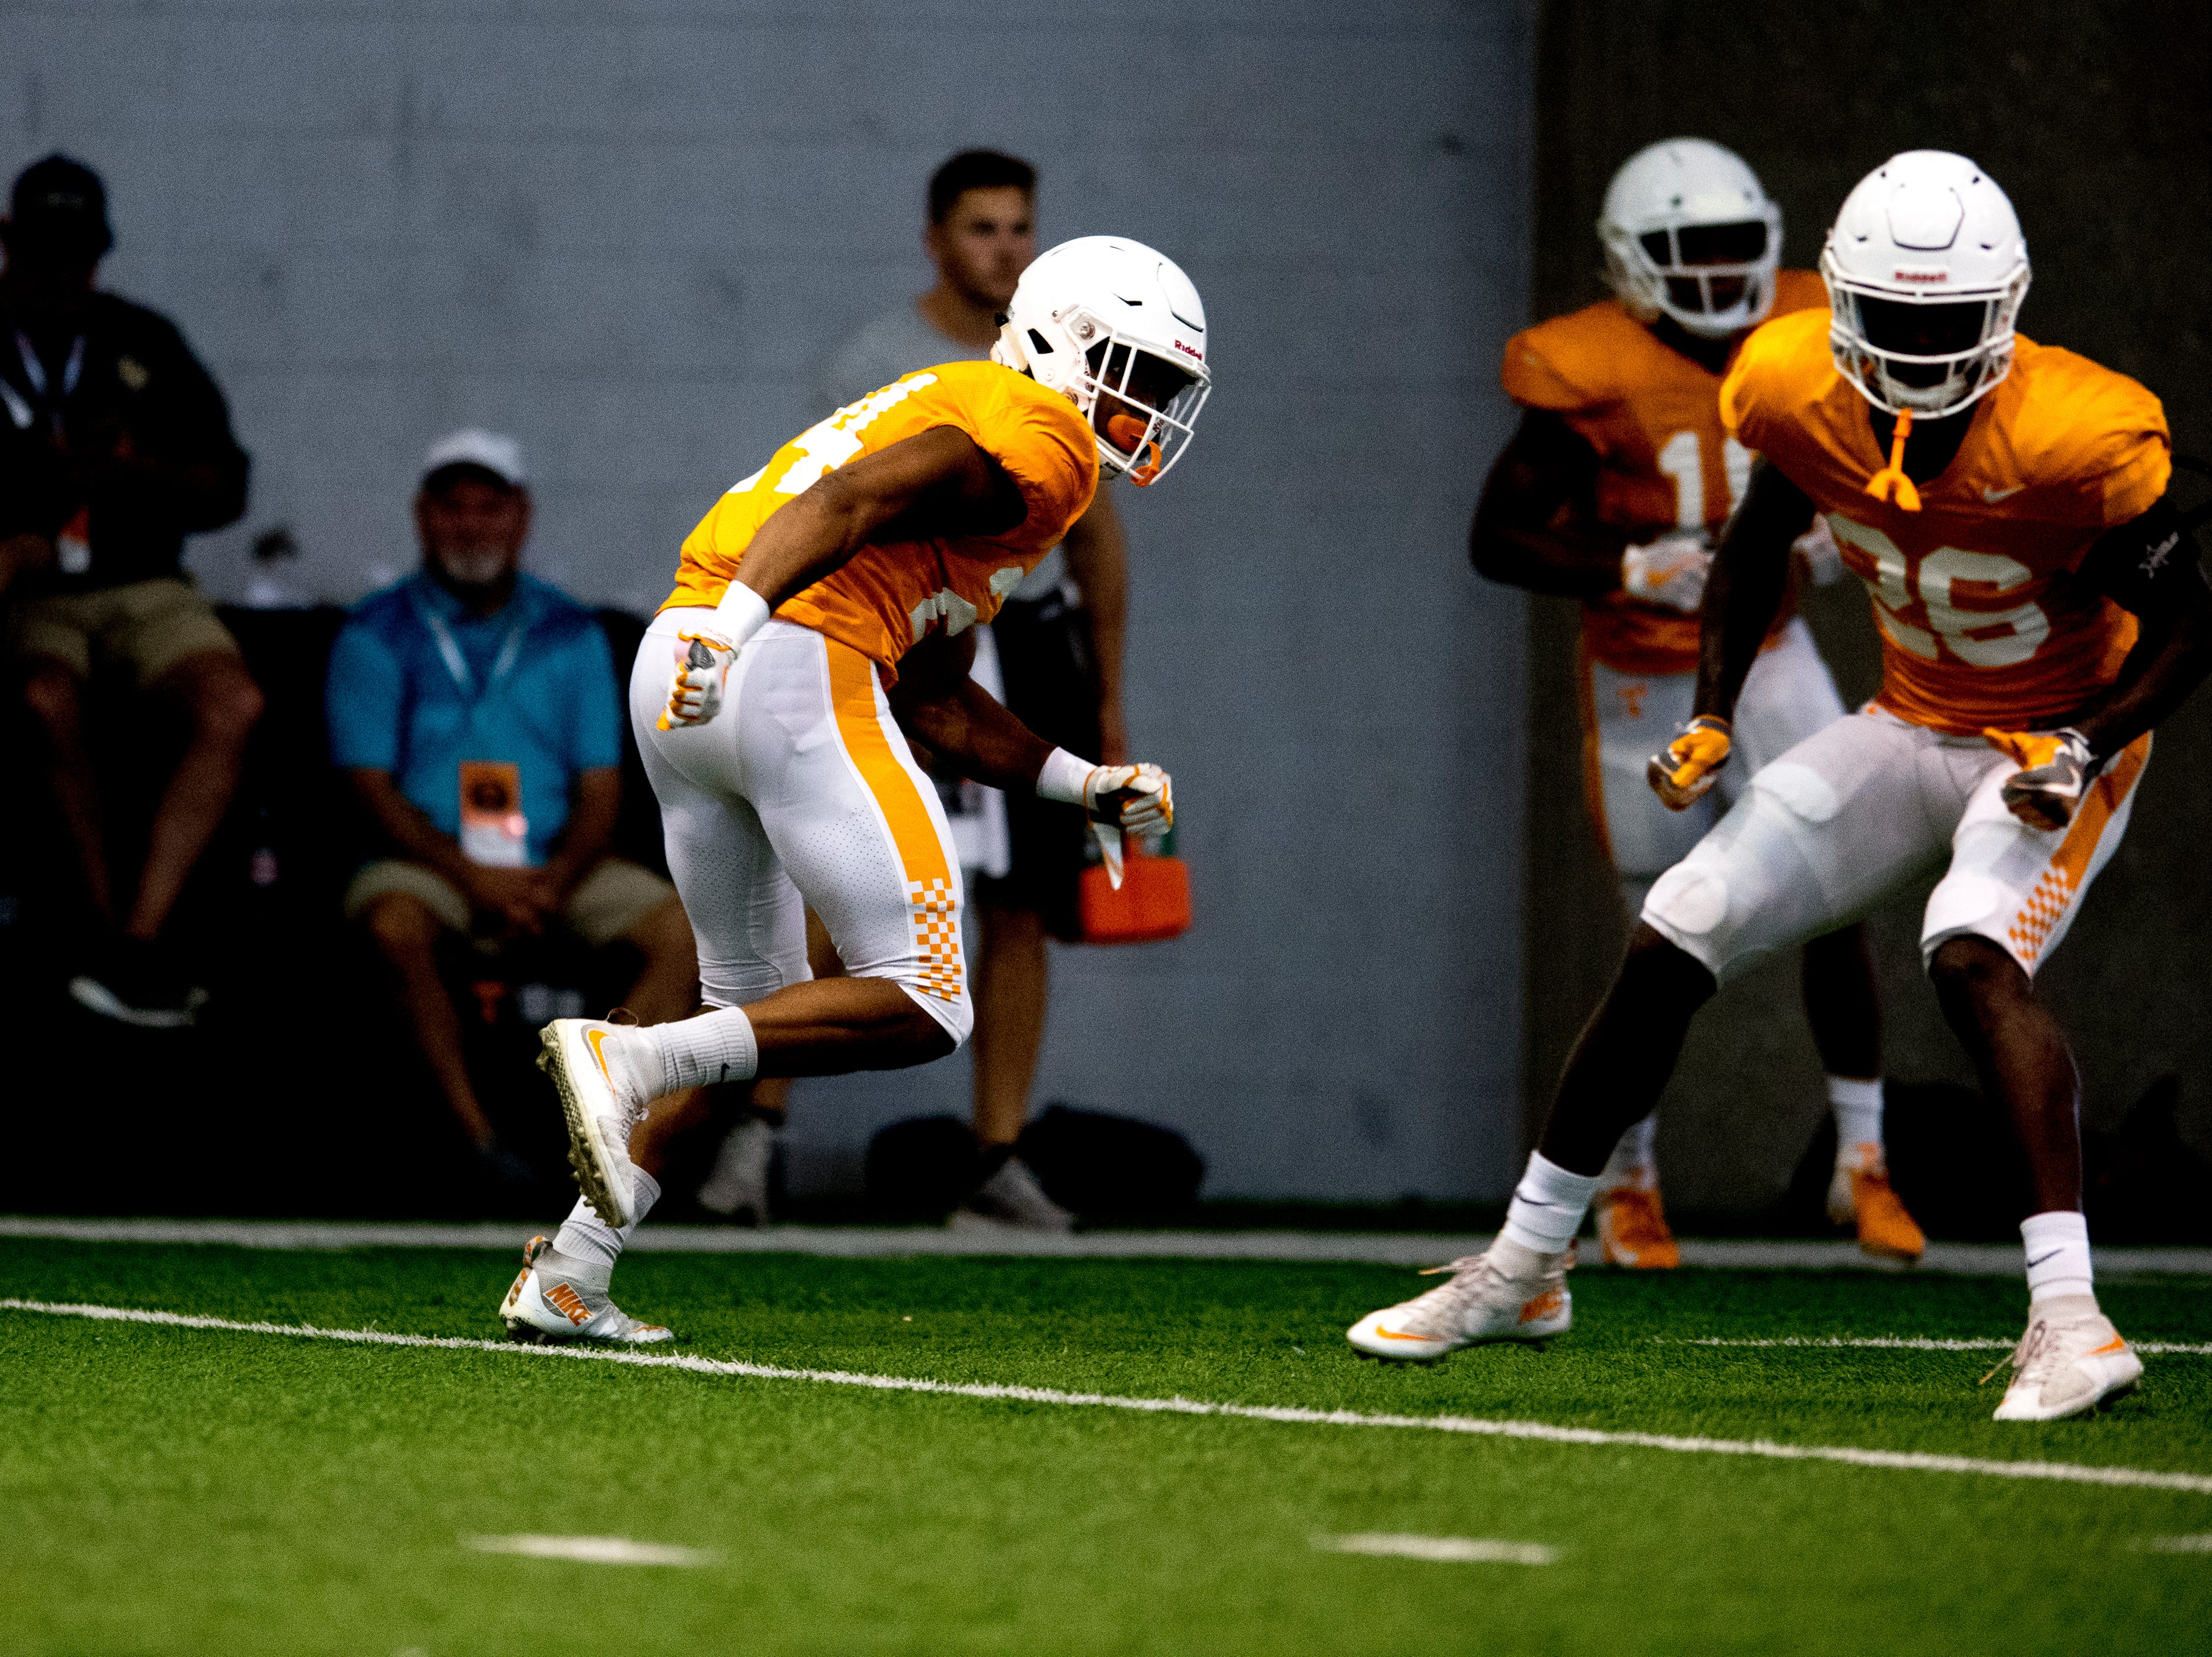 Tennessee defensive back Todd Kelly Jr. (24) drills with Tennessee defensive back Theo Jackson (26) during Tennessee fall football practice at Anderson Training Facility in Knoxville, Tennessee on Wednesday, September 26, 2018.